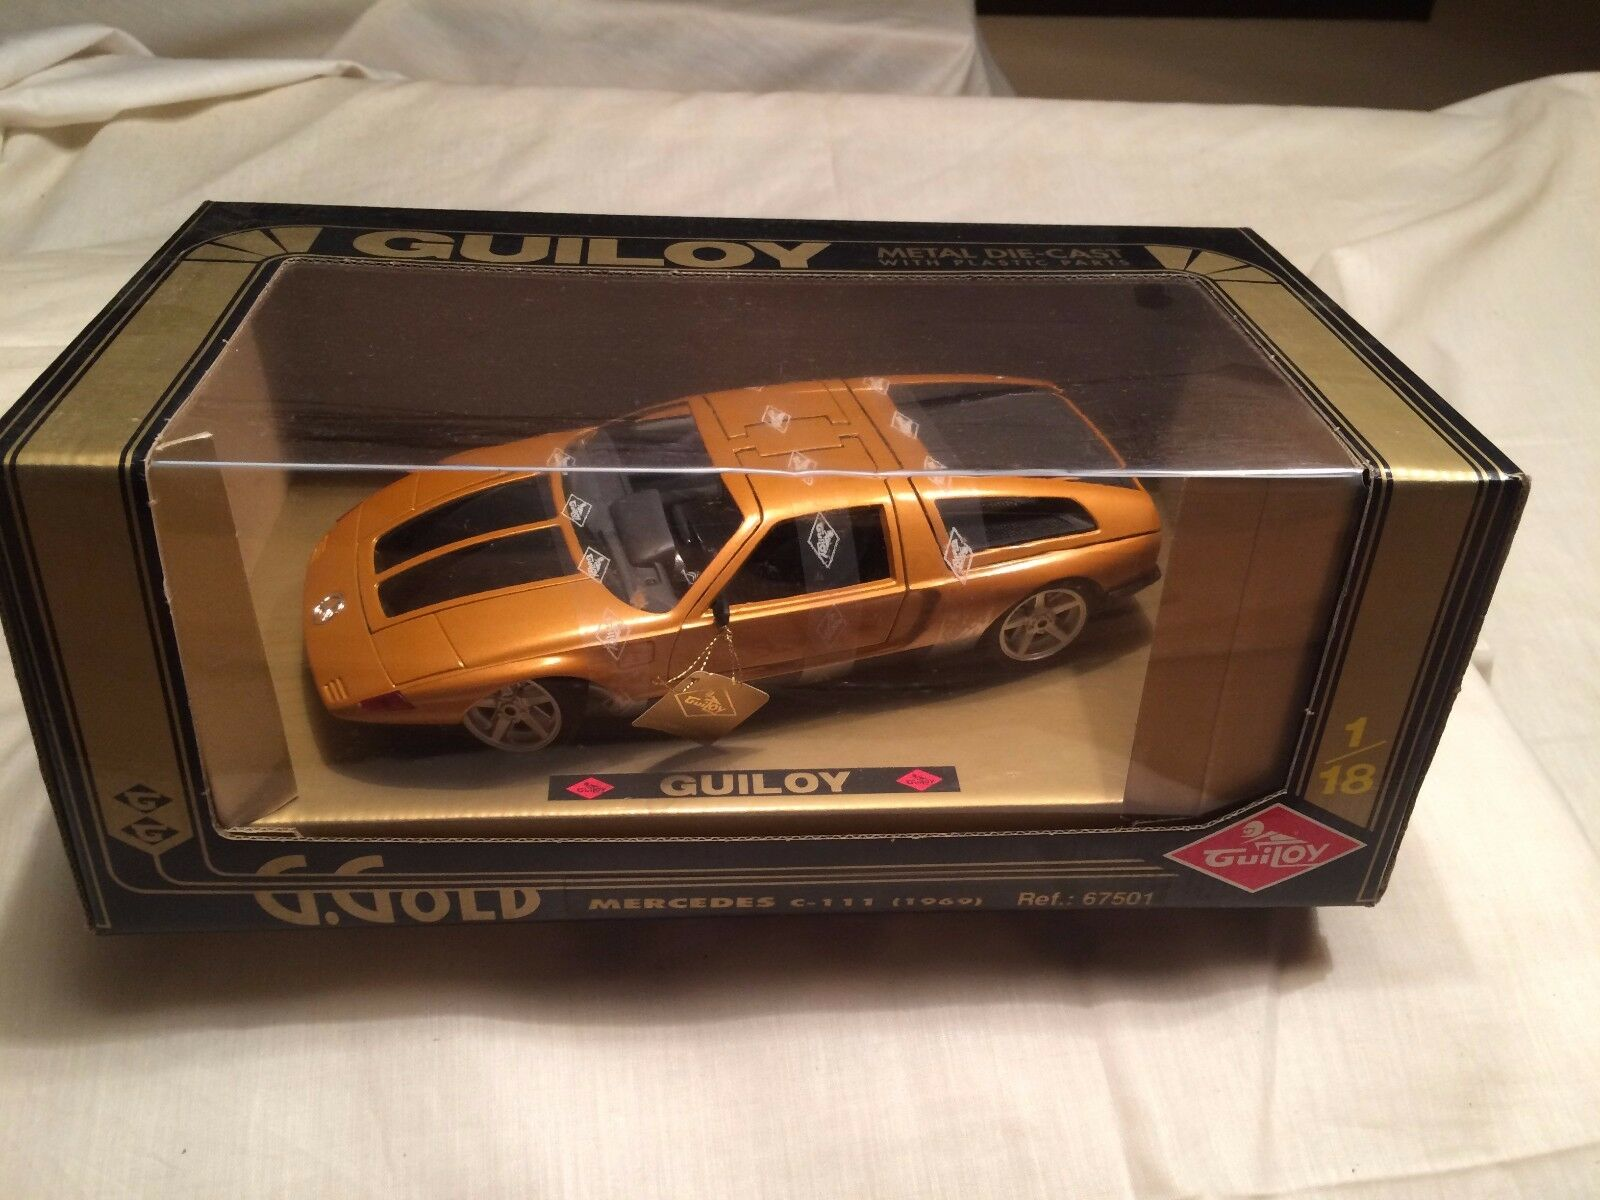 Mercedes Benz C 111 Guiloy 67501 1 18 scale